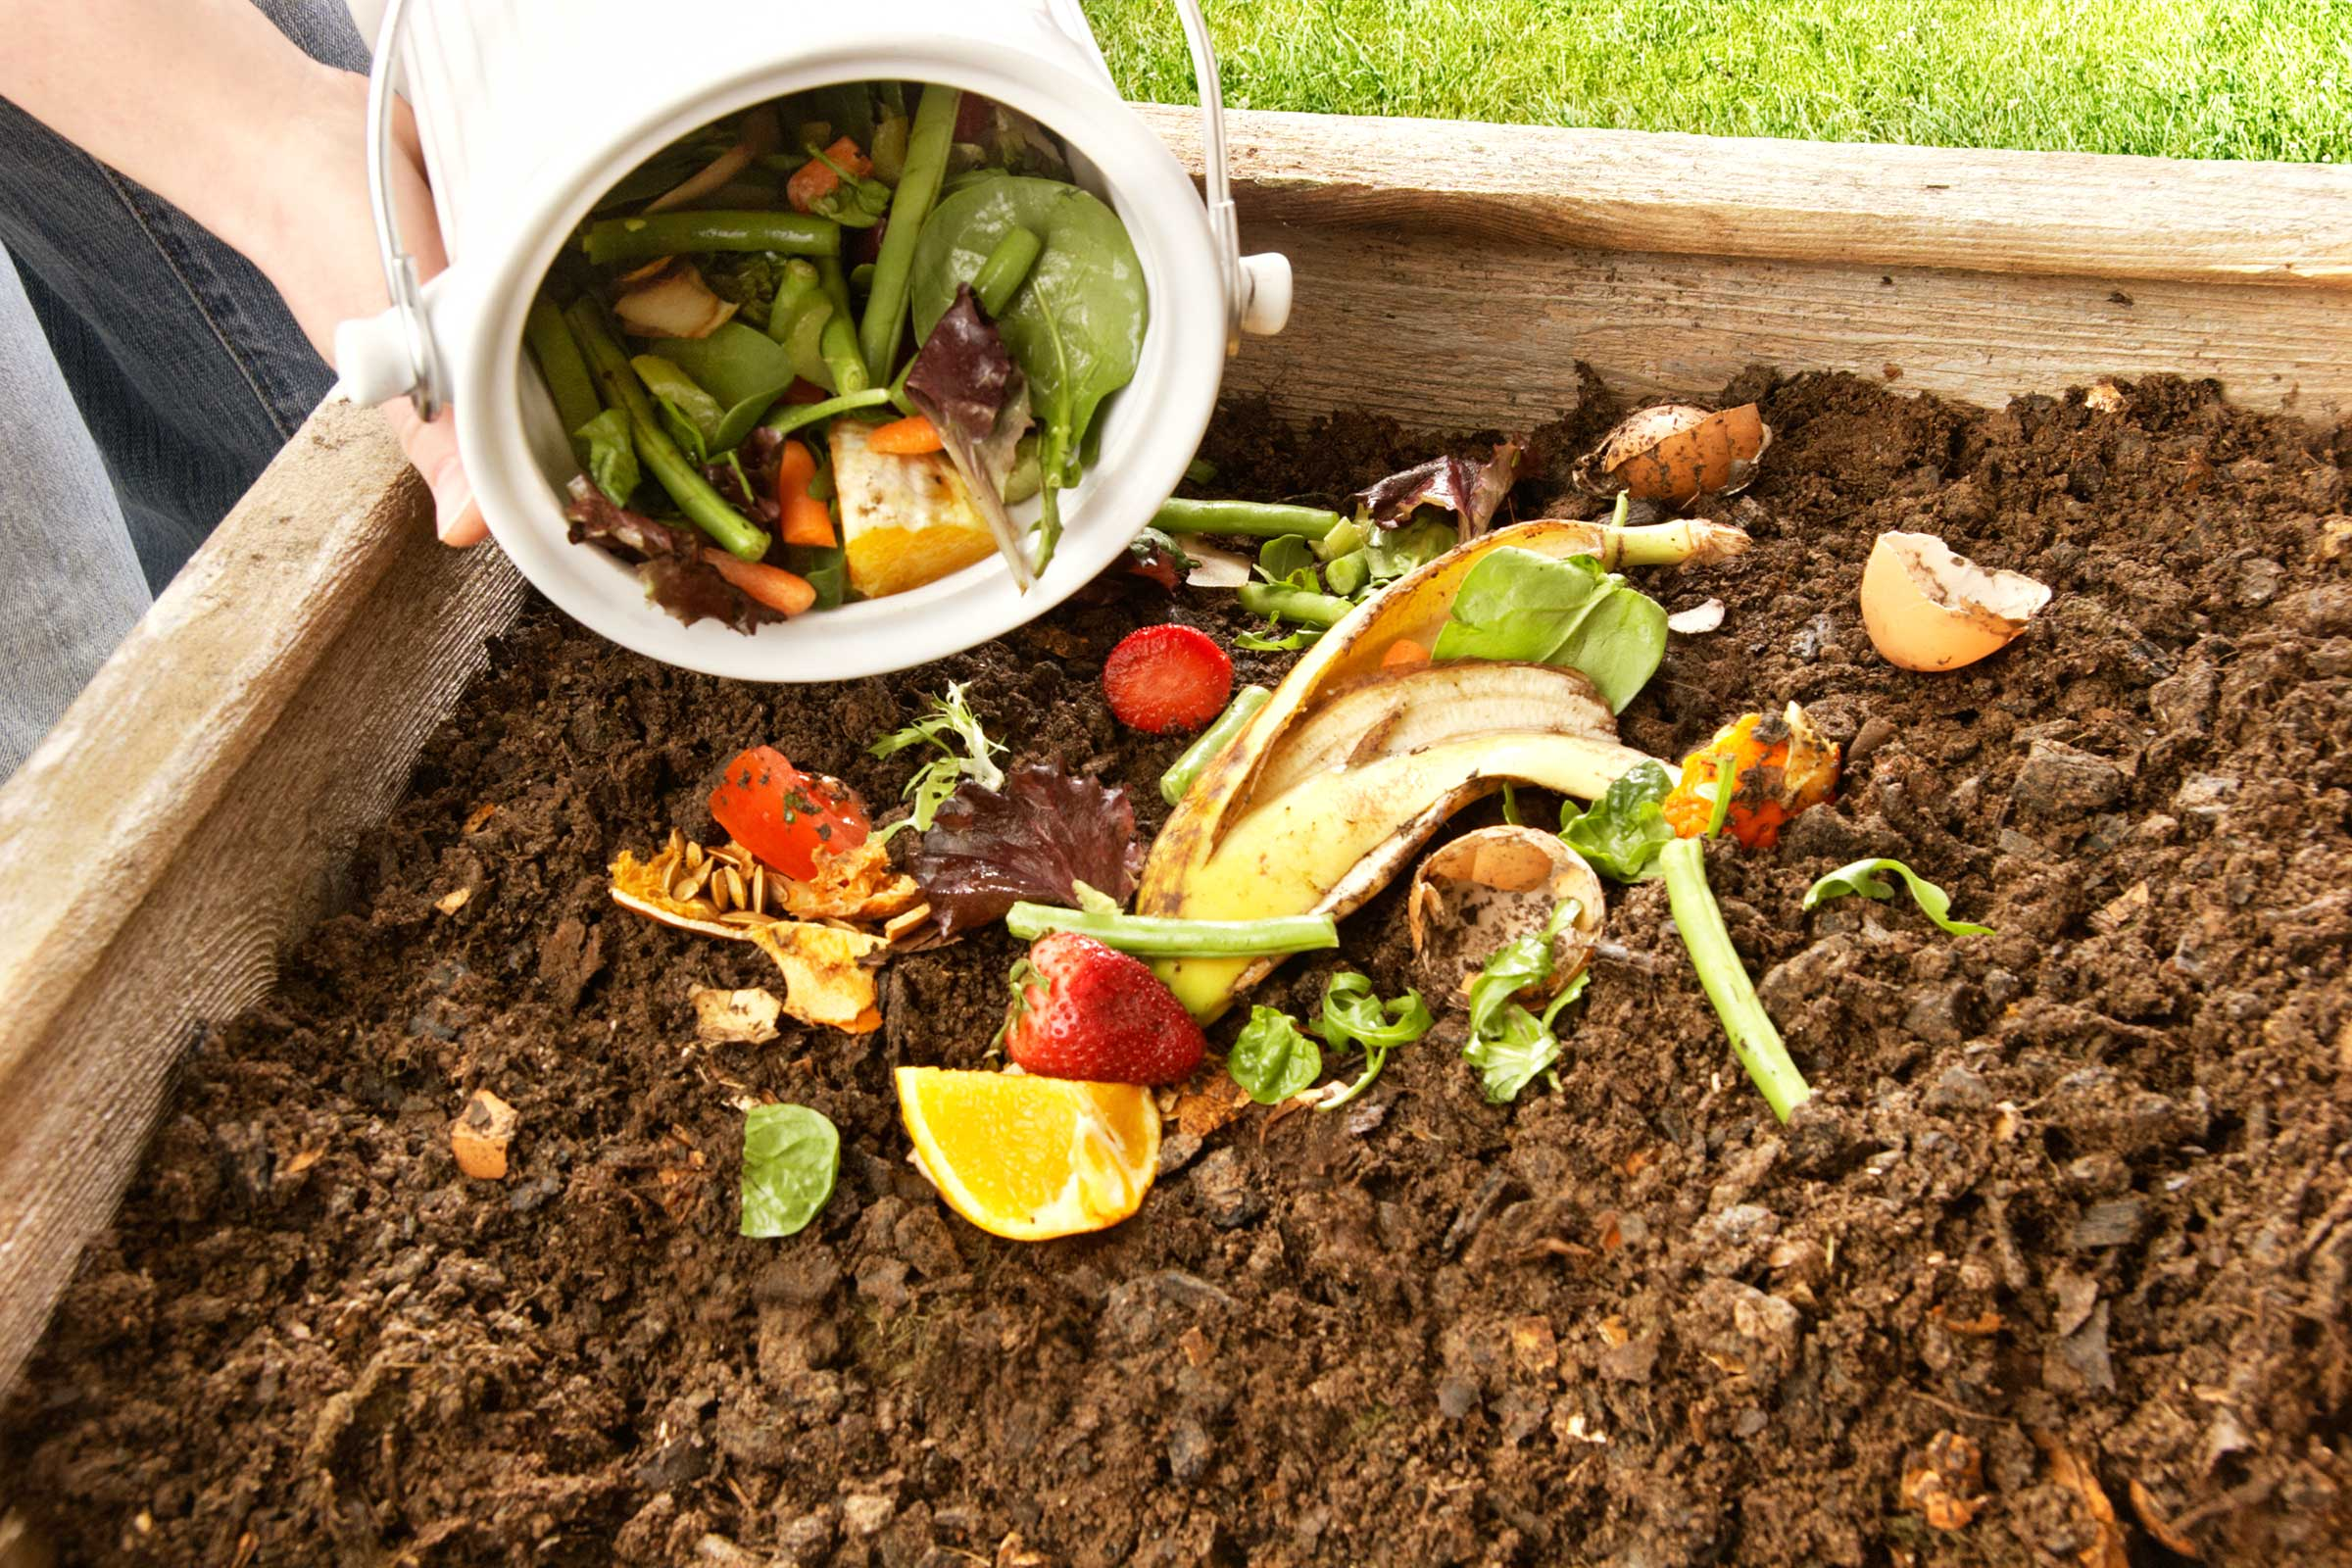 6 STEPS TO COMPOSTING YOUR HOUSEHOLD WASTE